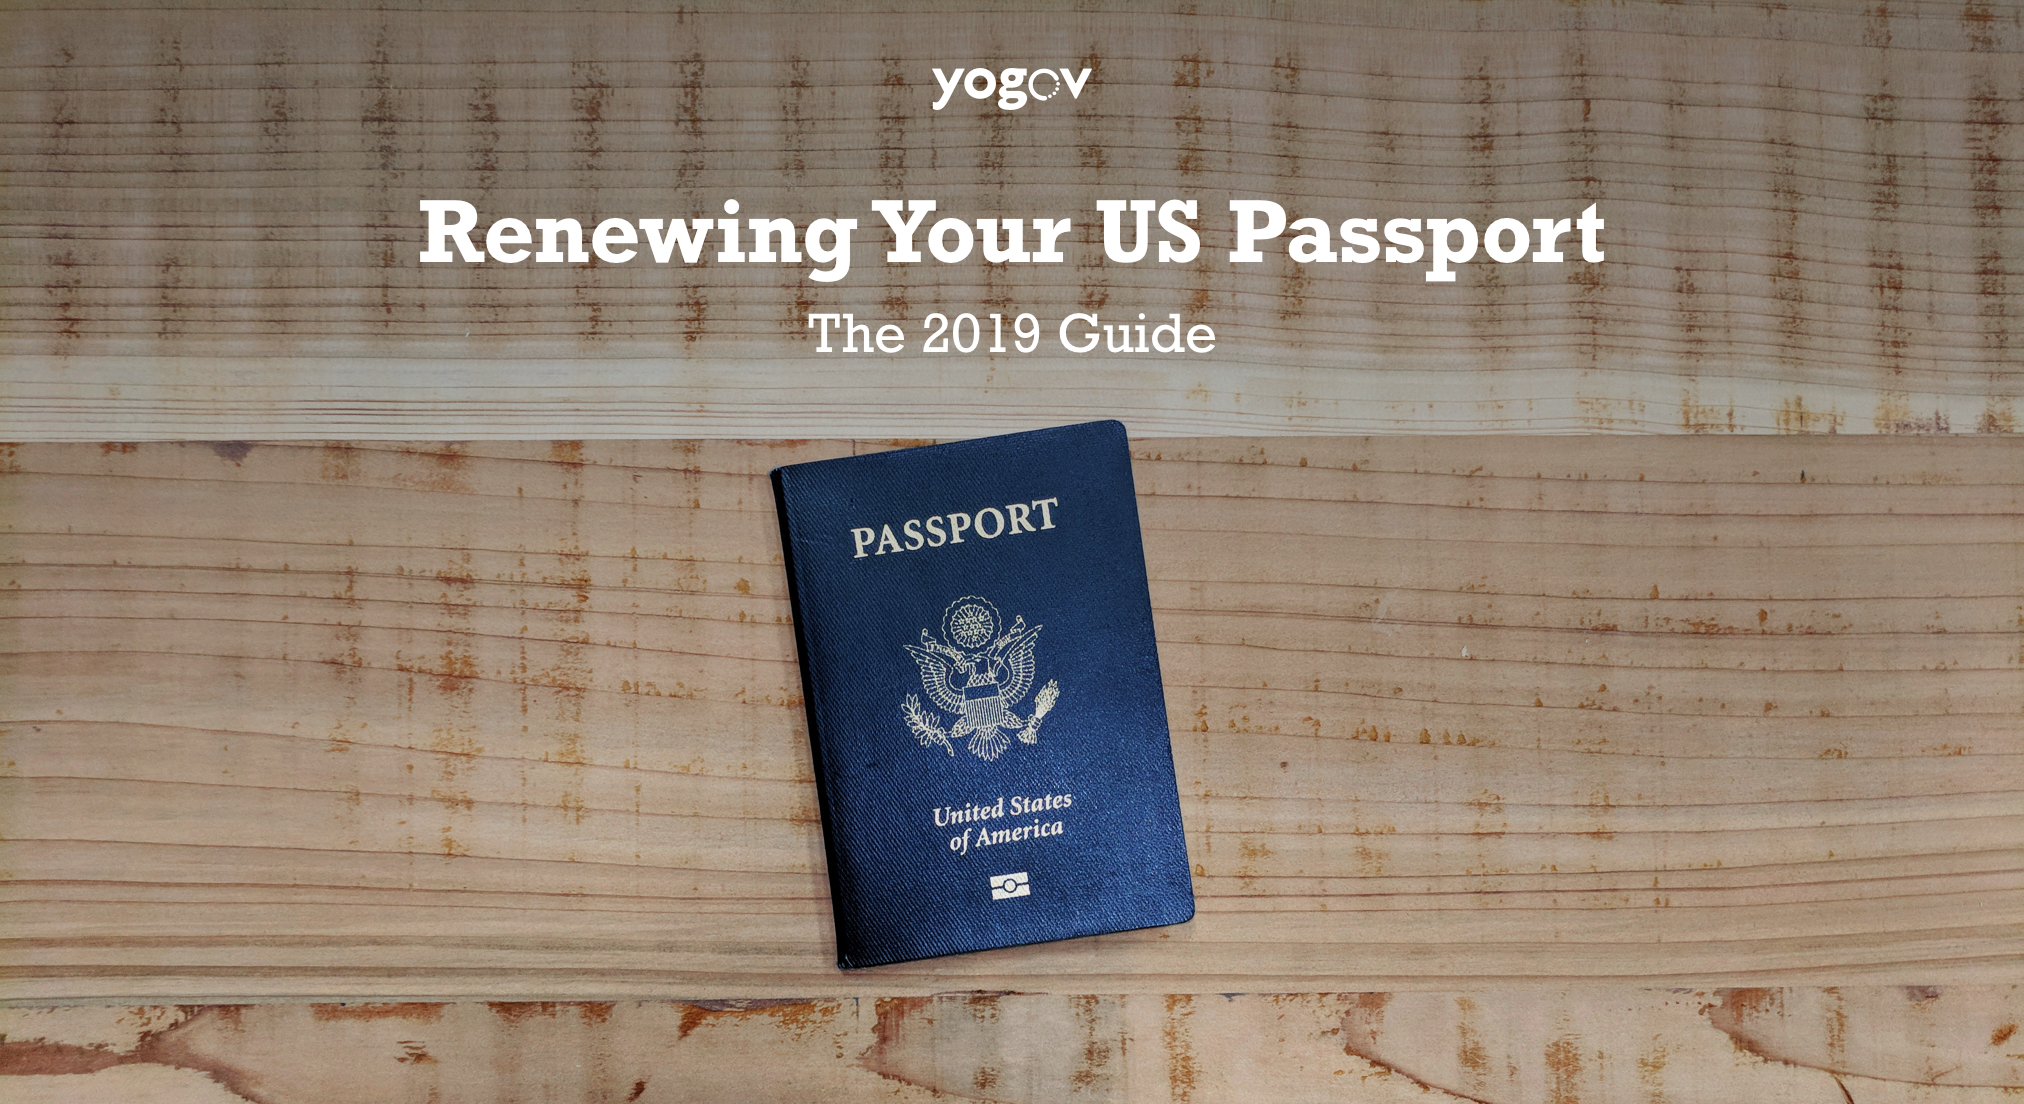 How to Renew Your US Passport Guide